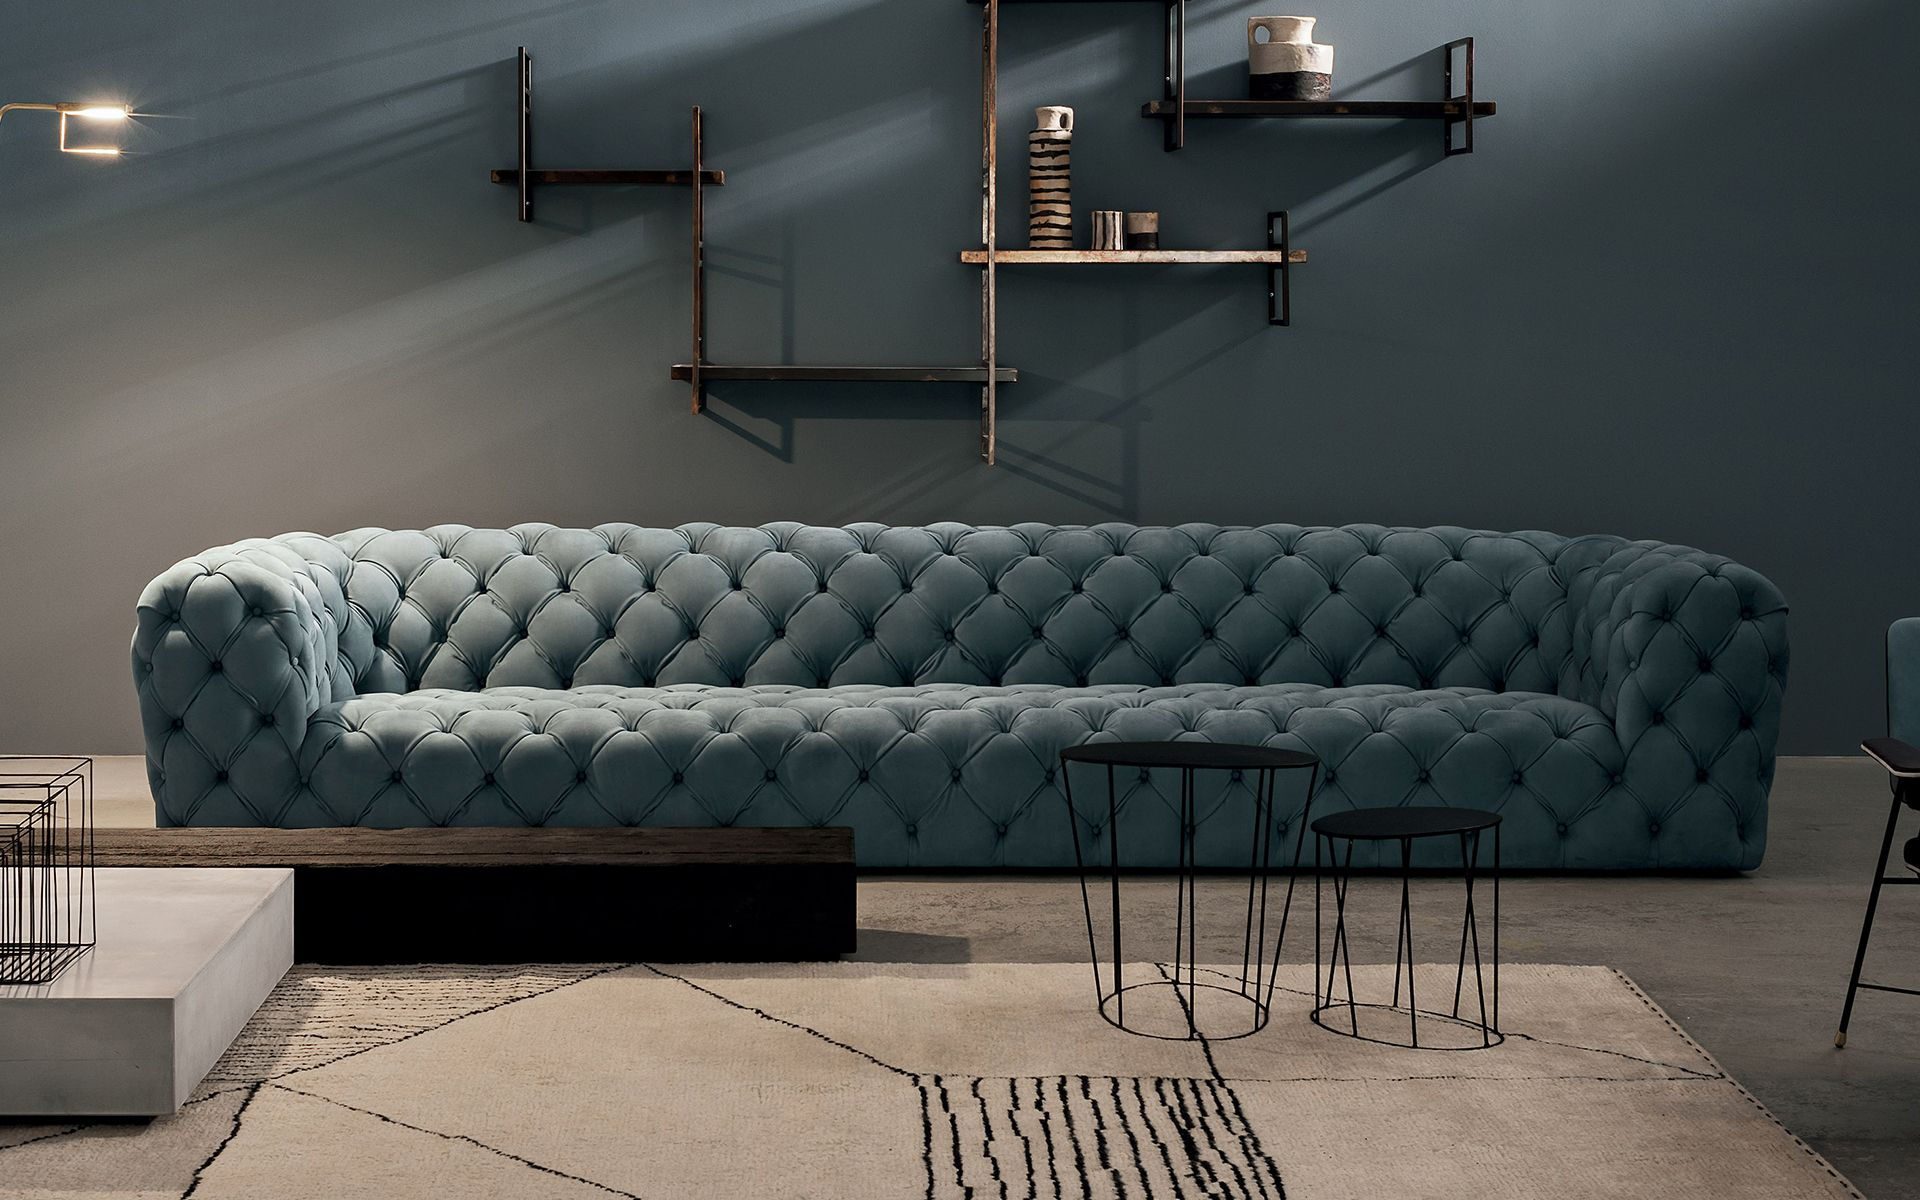 Oversized fort Paola Navone s Chester Moon sofa for Baxter